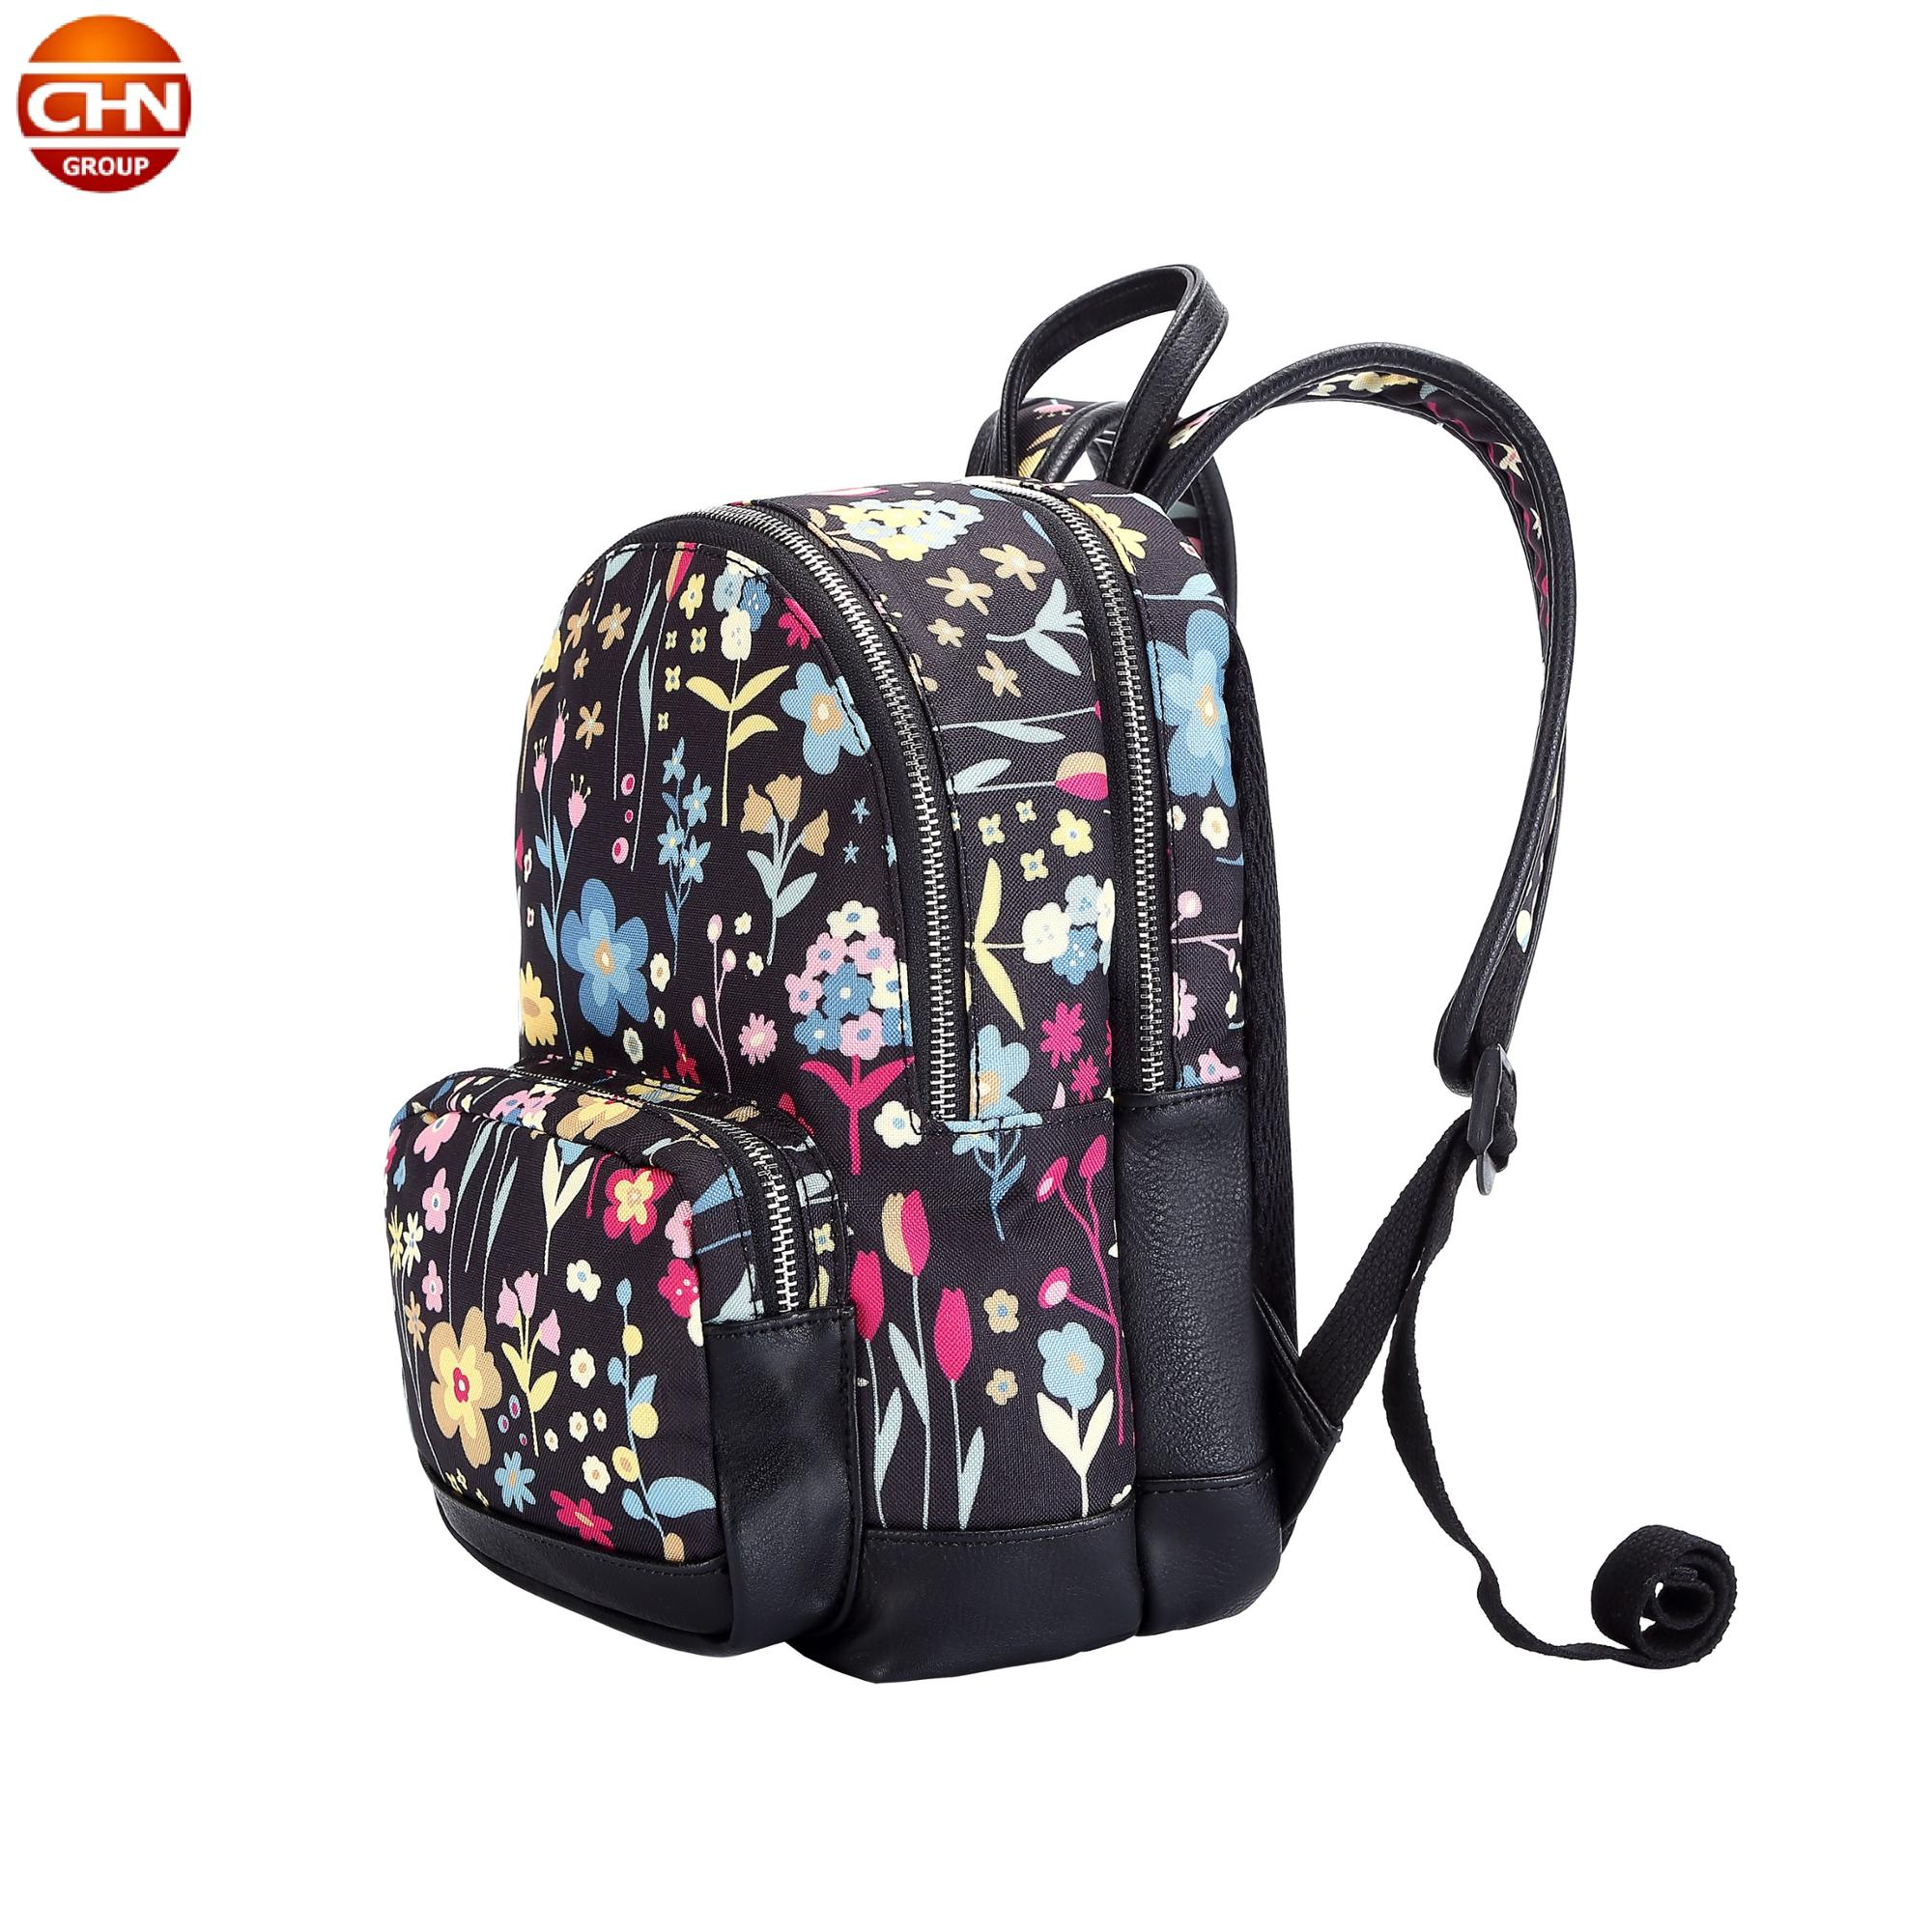 OEM printed school bag for women grils Activity backpack women backpack